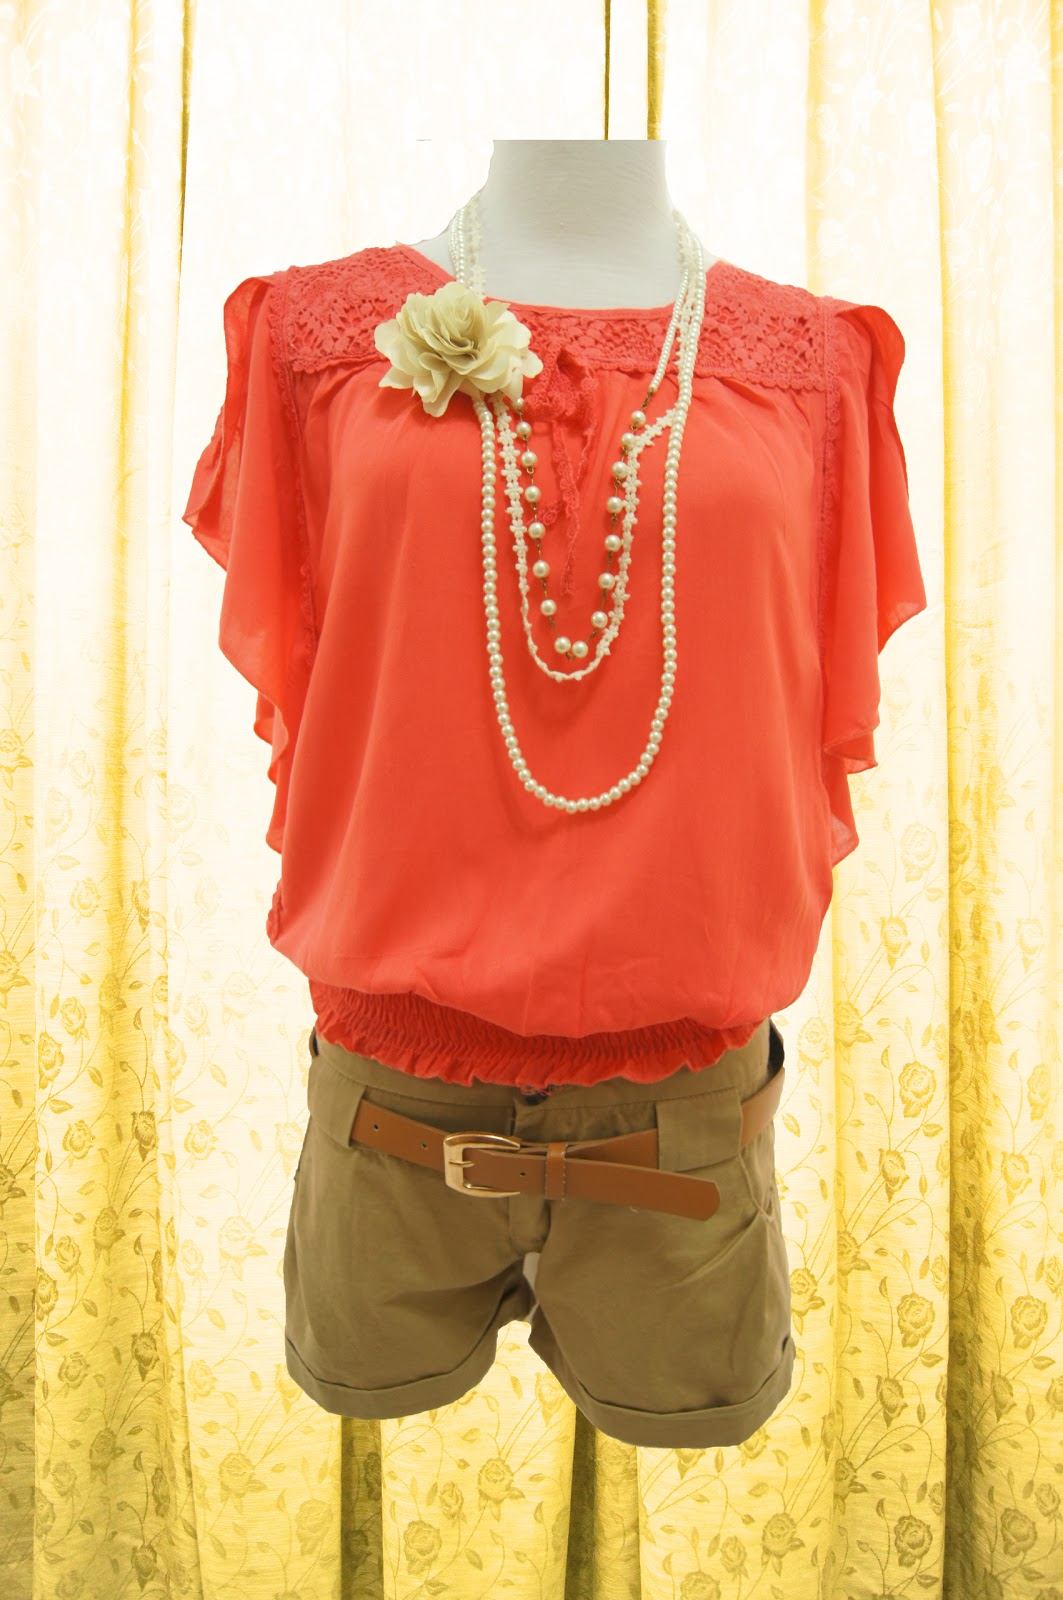 aeiloveu: Elegant Evening Blouse (TOP)